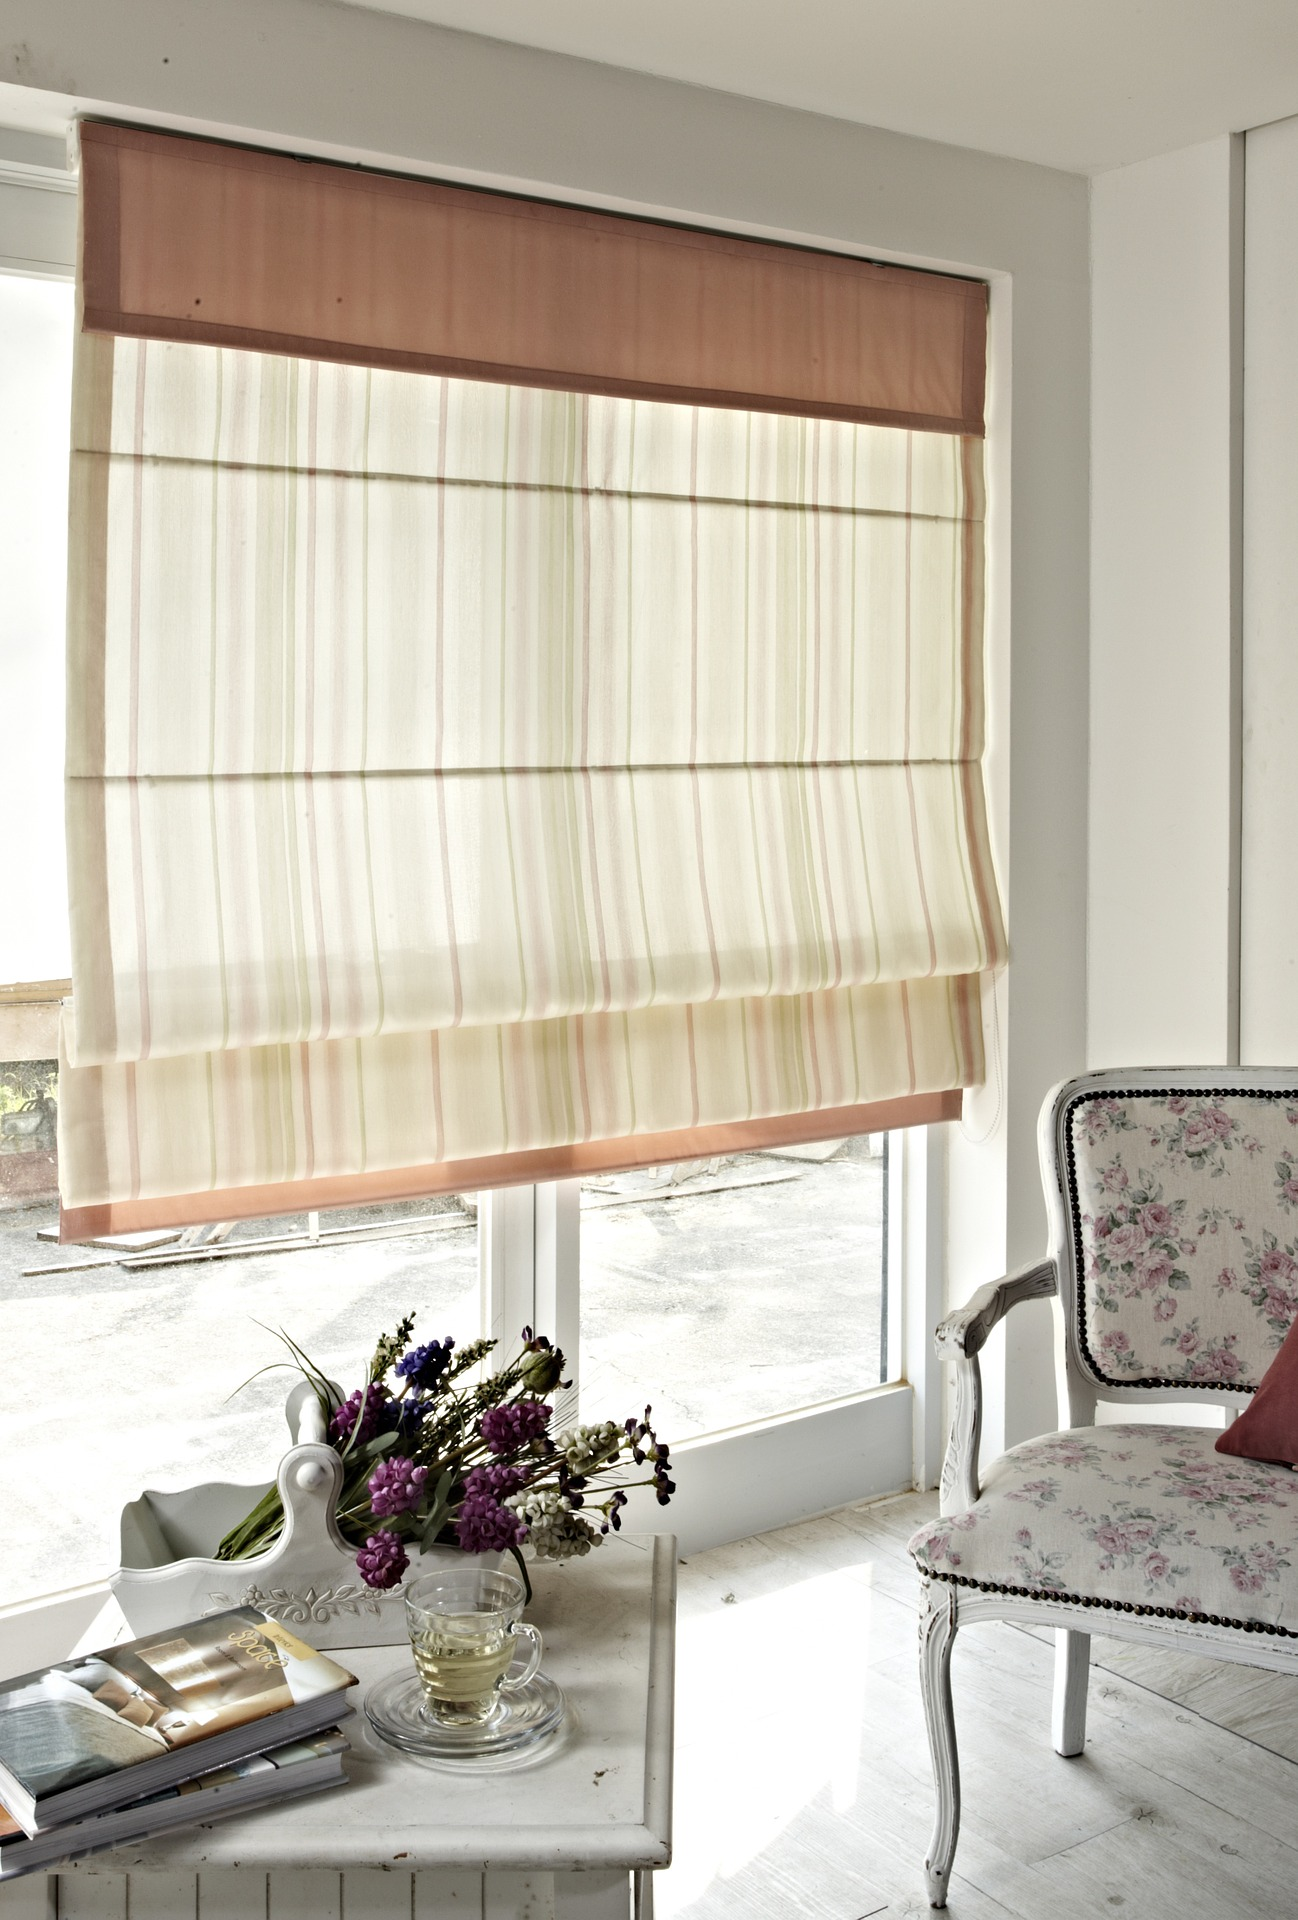 Do Blinds Help Keep Cold Out? You'll Be Surprised